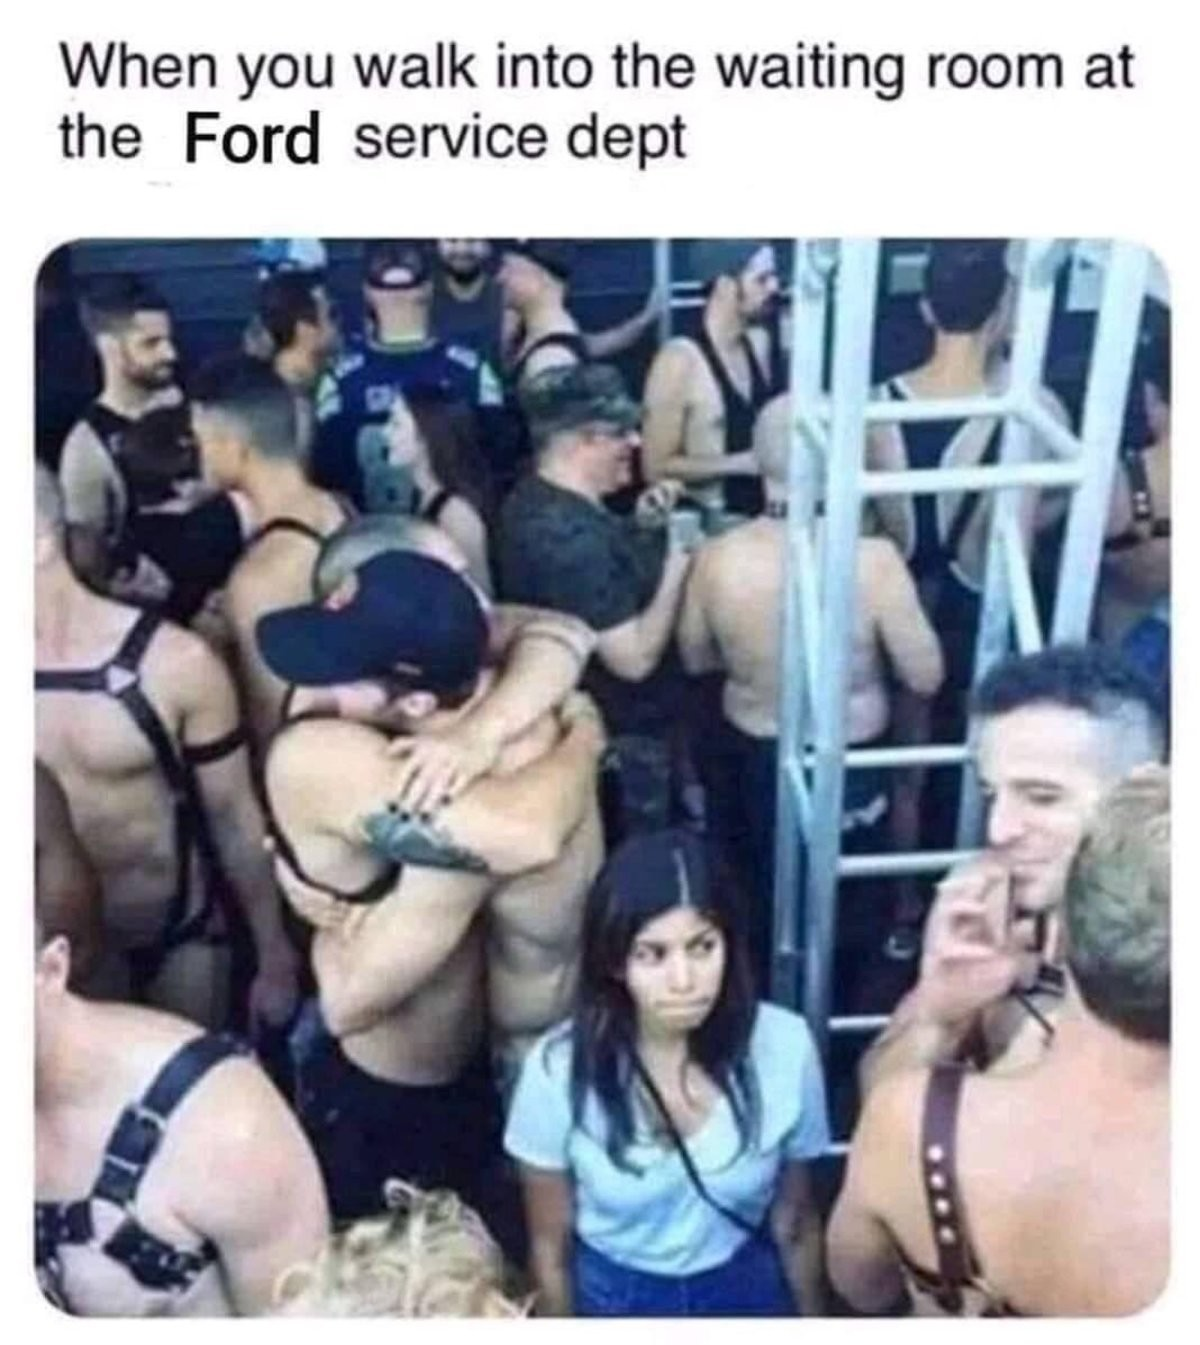 uninvited dotted archer Octopus. .. Can confirm, am FordFag and it's literally like this everytime I need servicing